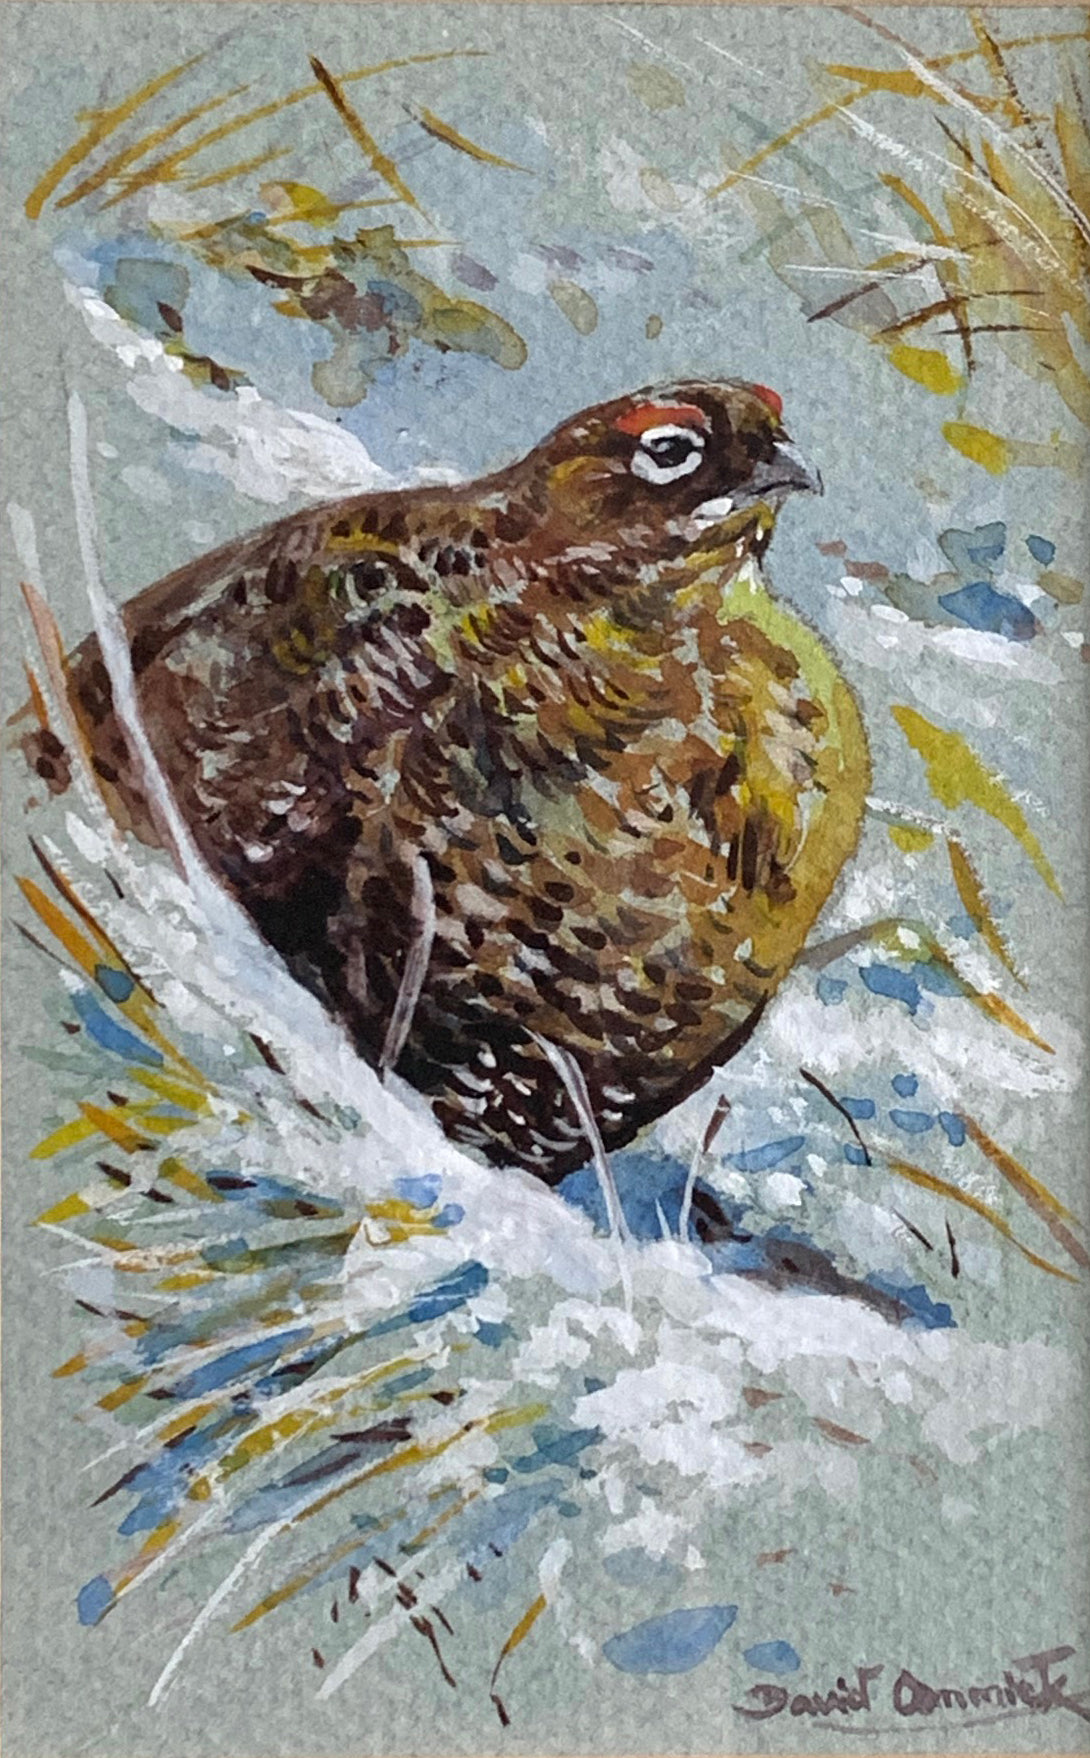 'Grouse in the snow' - Original Watercolour by David Cemmick - 13 x 8cm